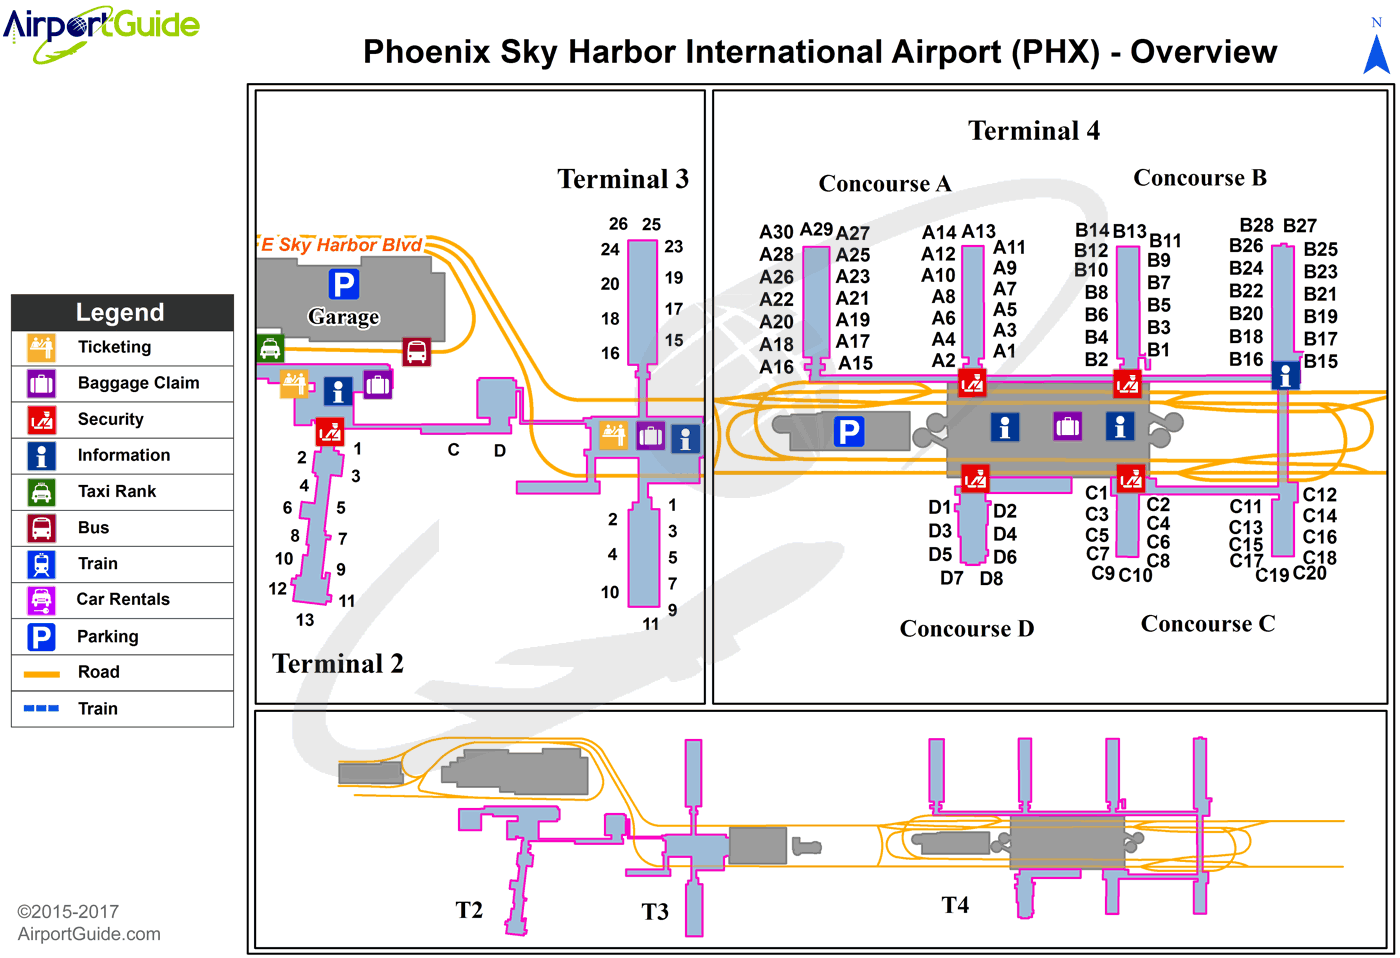 Phoenix - Phoenix Sky Harbor International (PHX) Airport Terminal Map - Overview